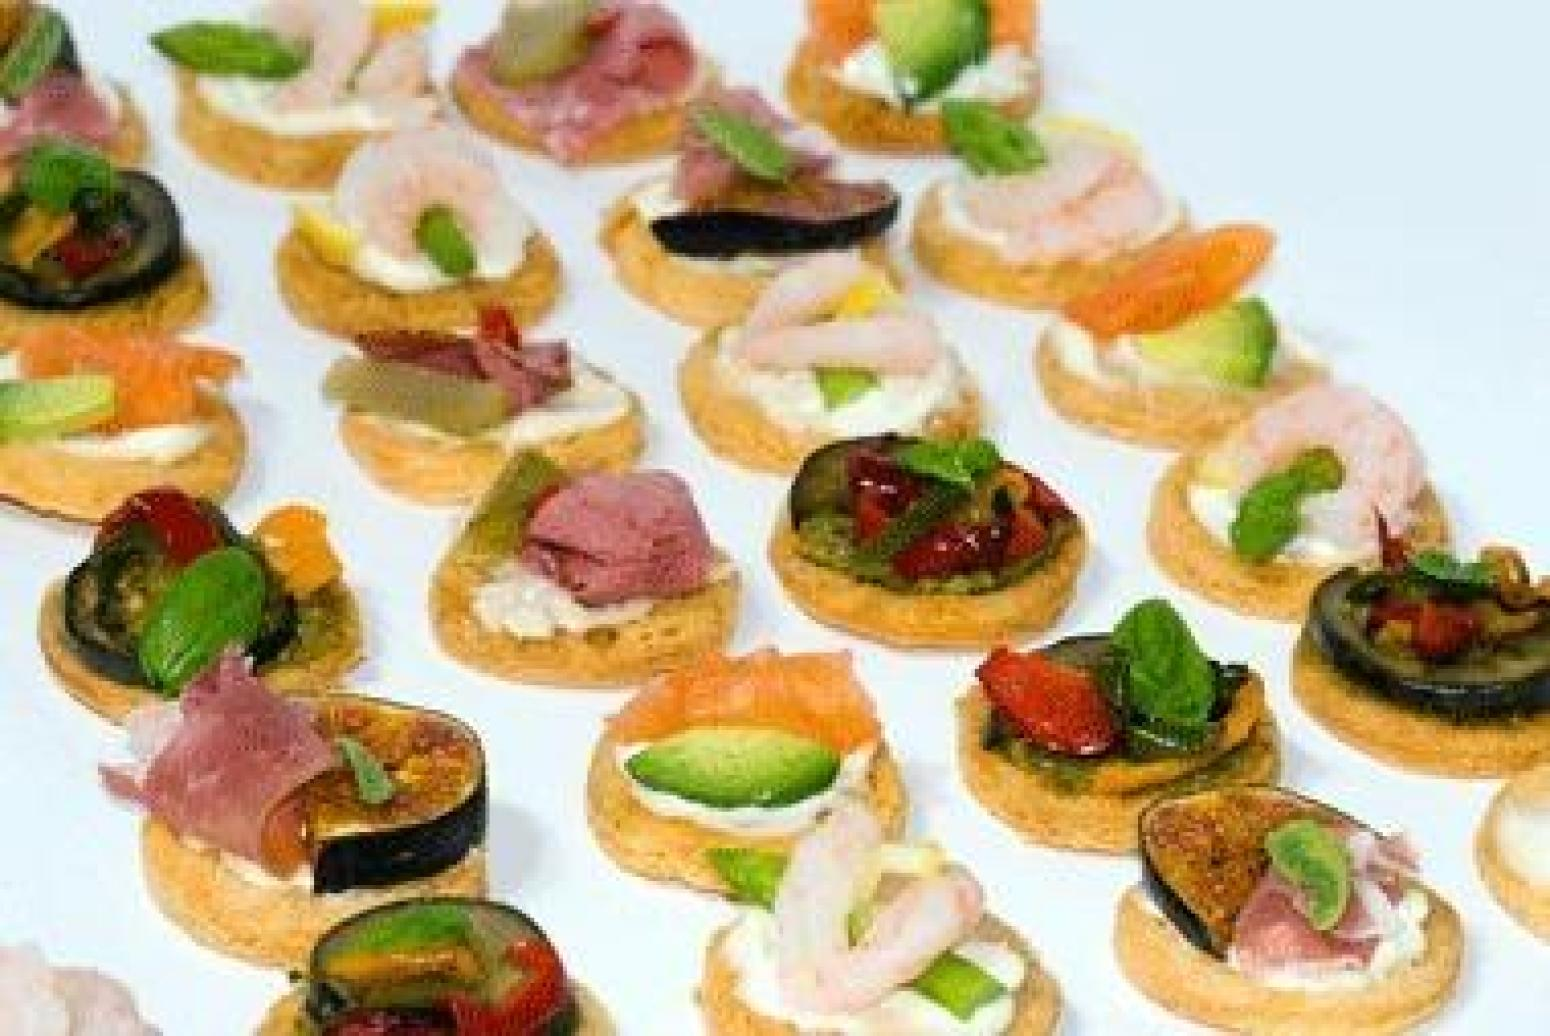 Canap s recipe 101 just a pinch recipes for Canape ideas for party